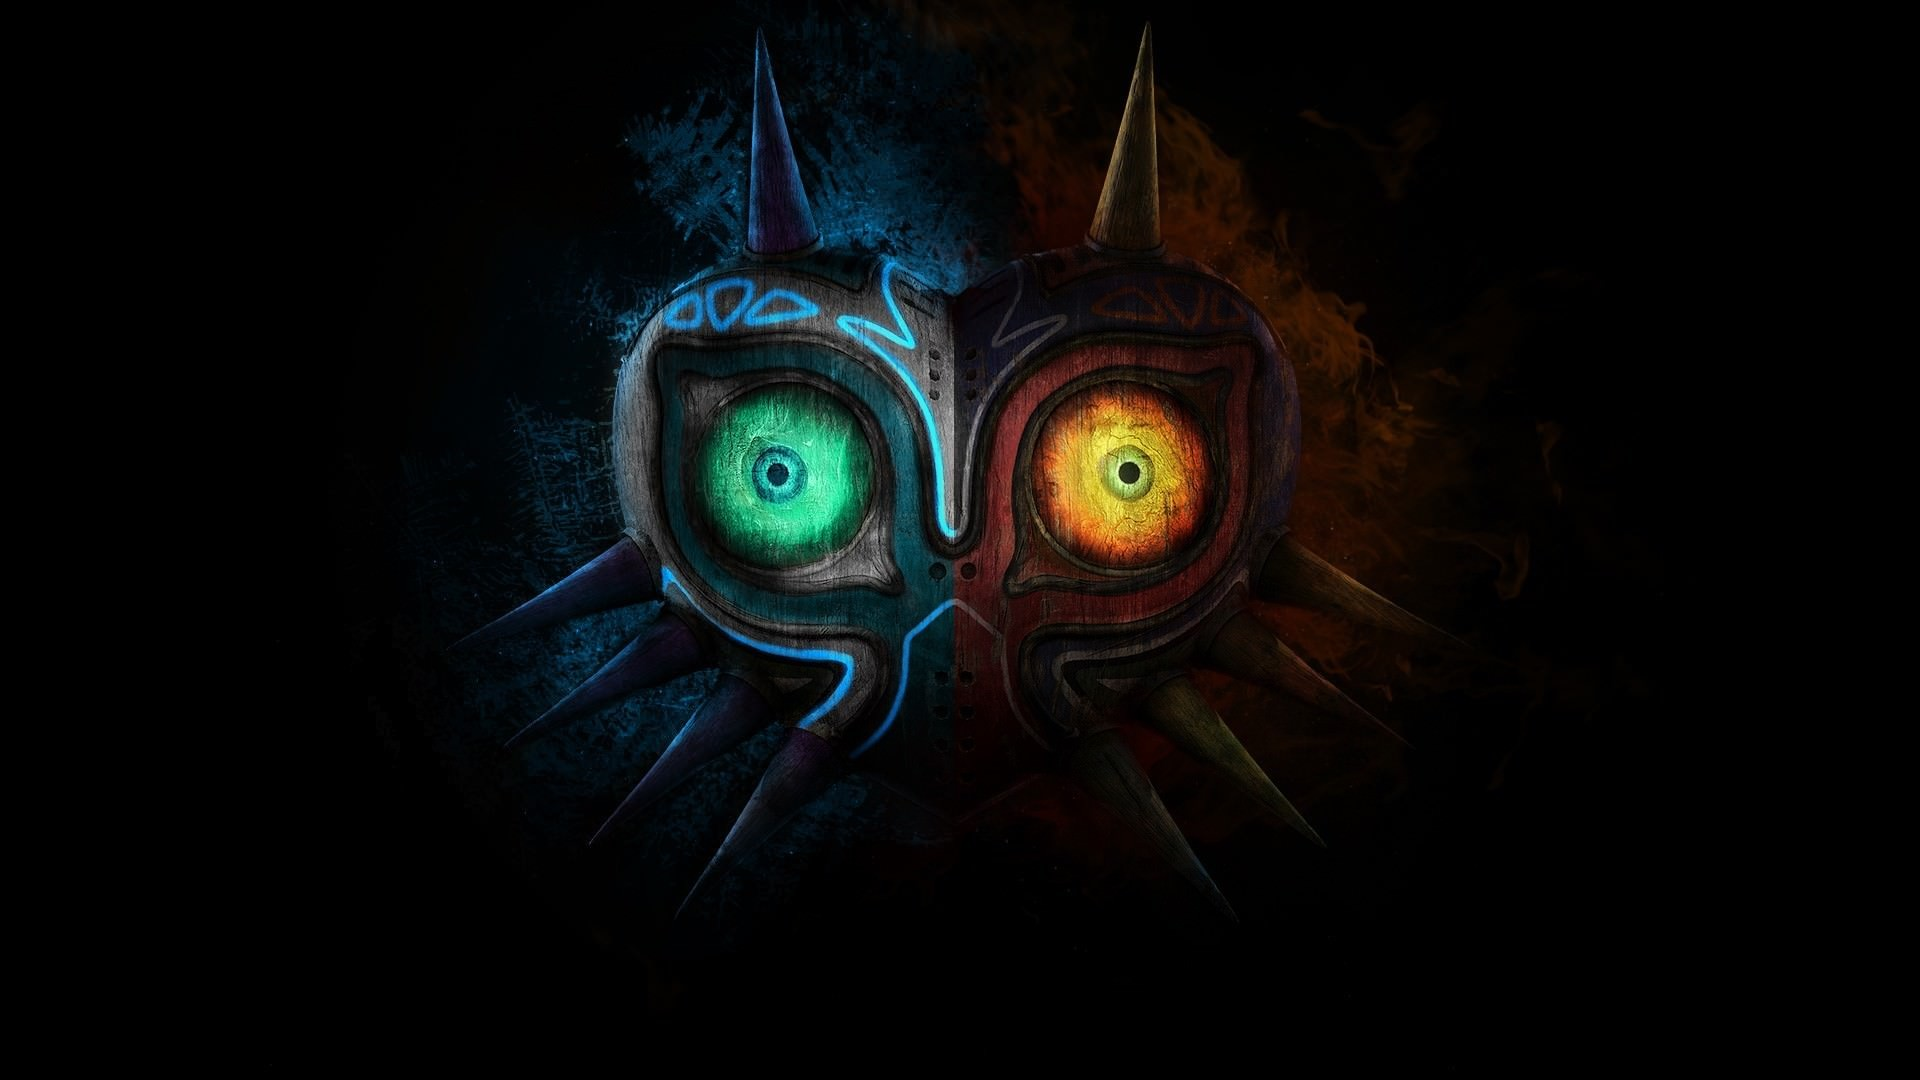 1920x1080 The Legend Of Zelda Majora Mask Wallpaper DigitalArtio